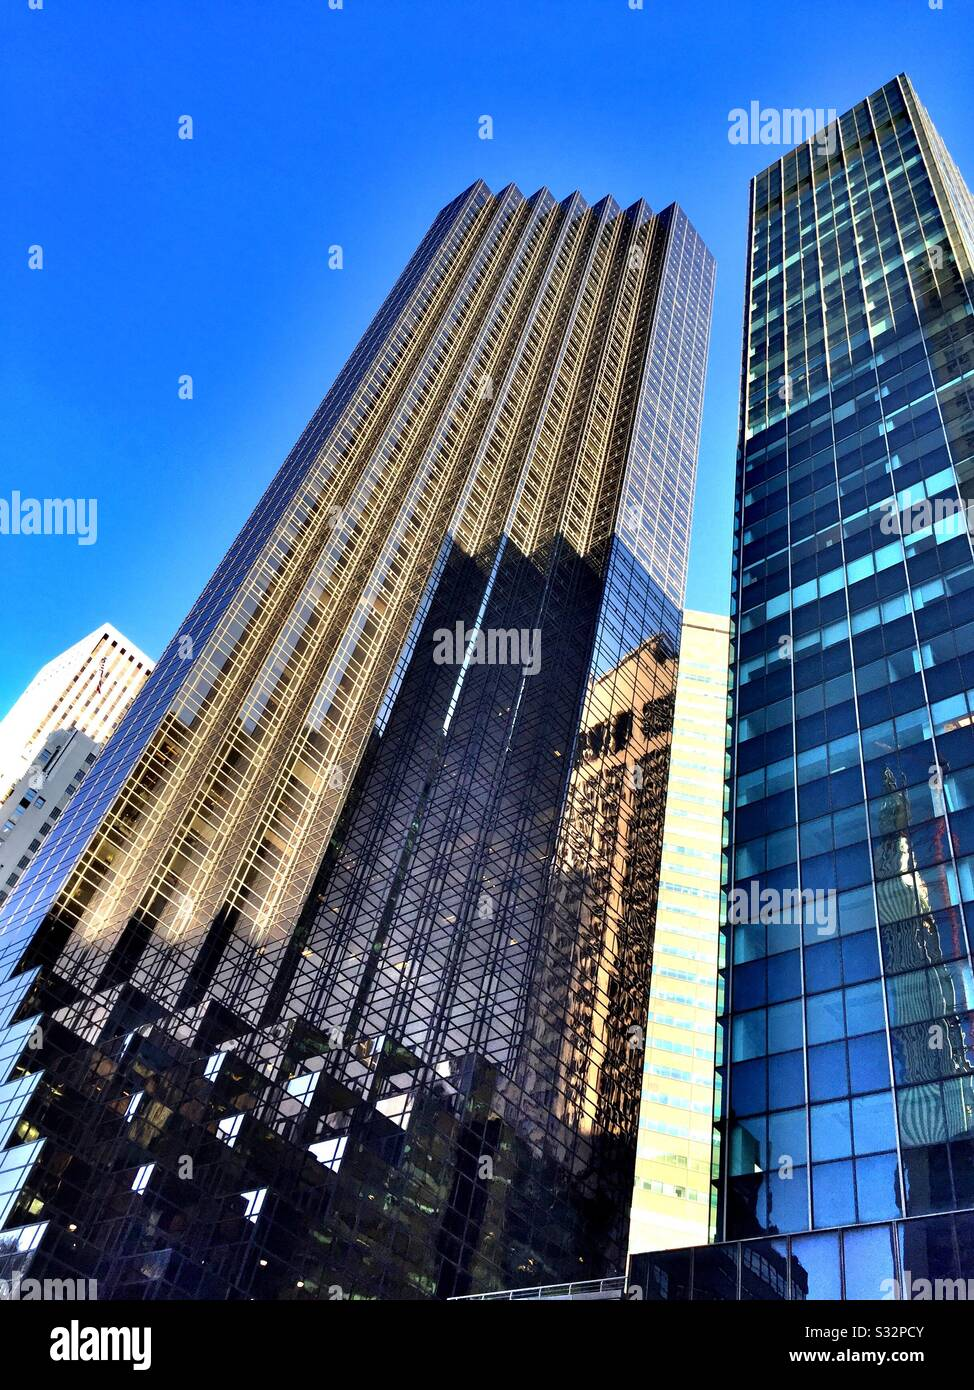 The Trump Tower And Olympic Tower Skyscrapers On 5th Ave Manhattan New York City Usa Stock Photo Alamy